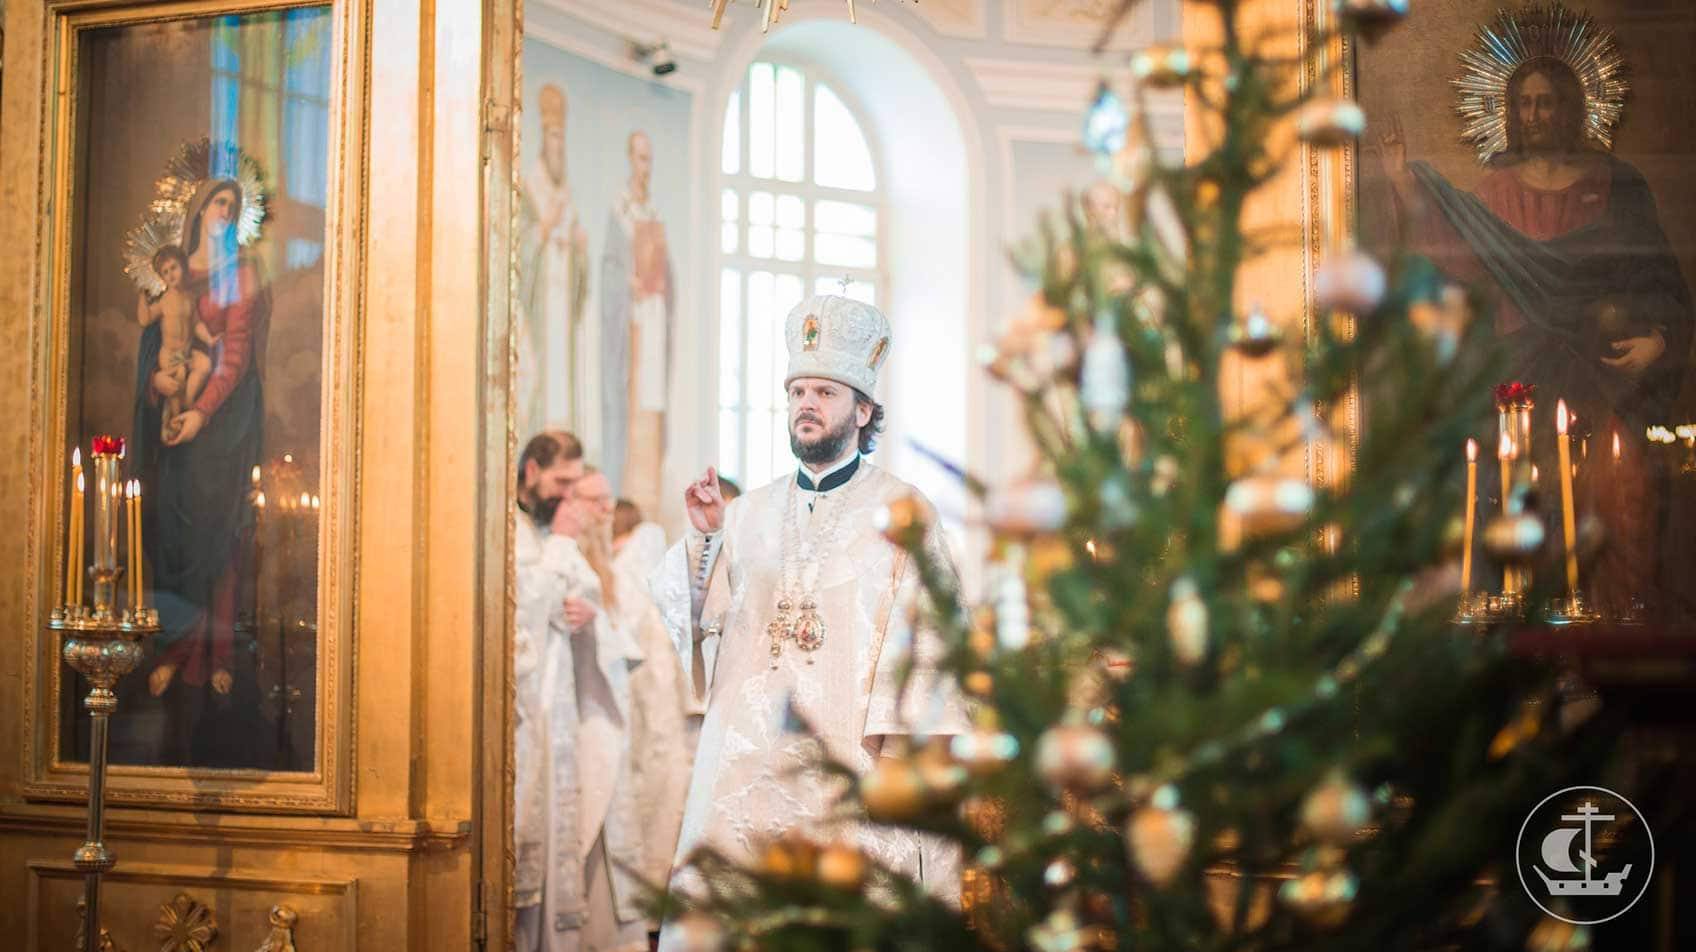 Orthodox Christmas mass in a church in St. Petersburg, Russia